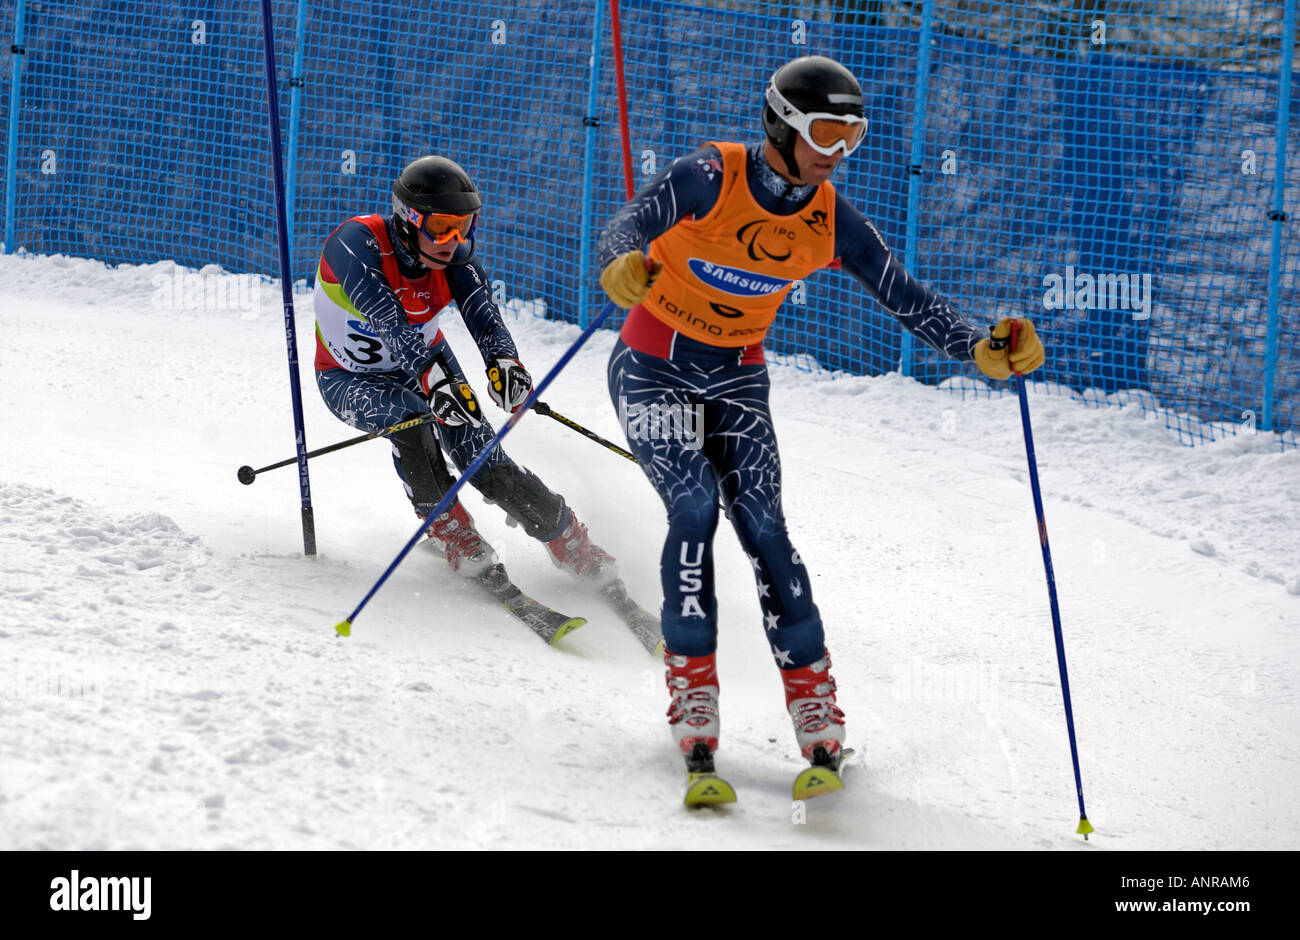 Andrew Parr of the USA follows the shouts of his guide in the Mens Alpine Skiing Slalom Visually Impaired competition - Stock Image